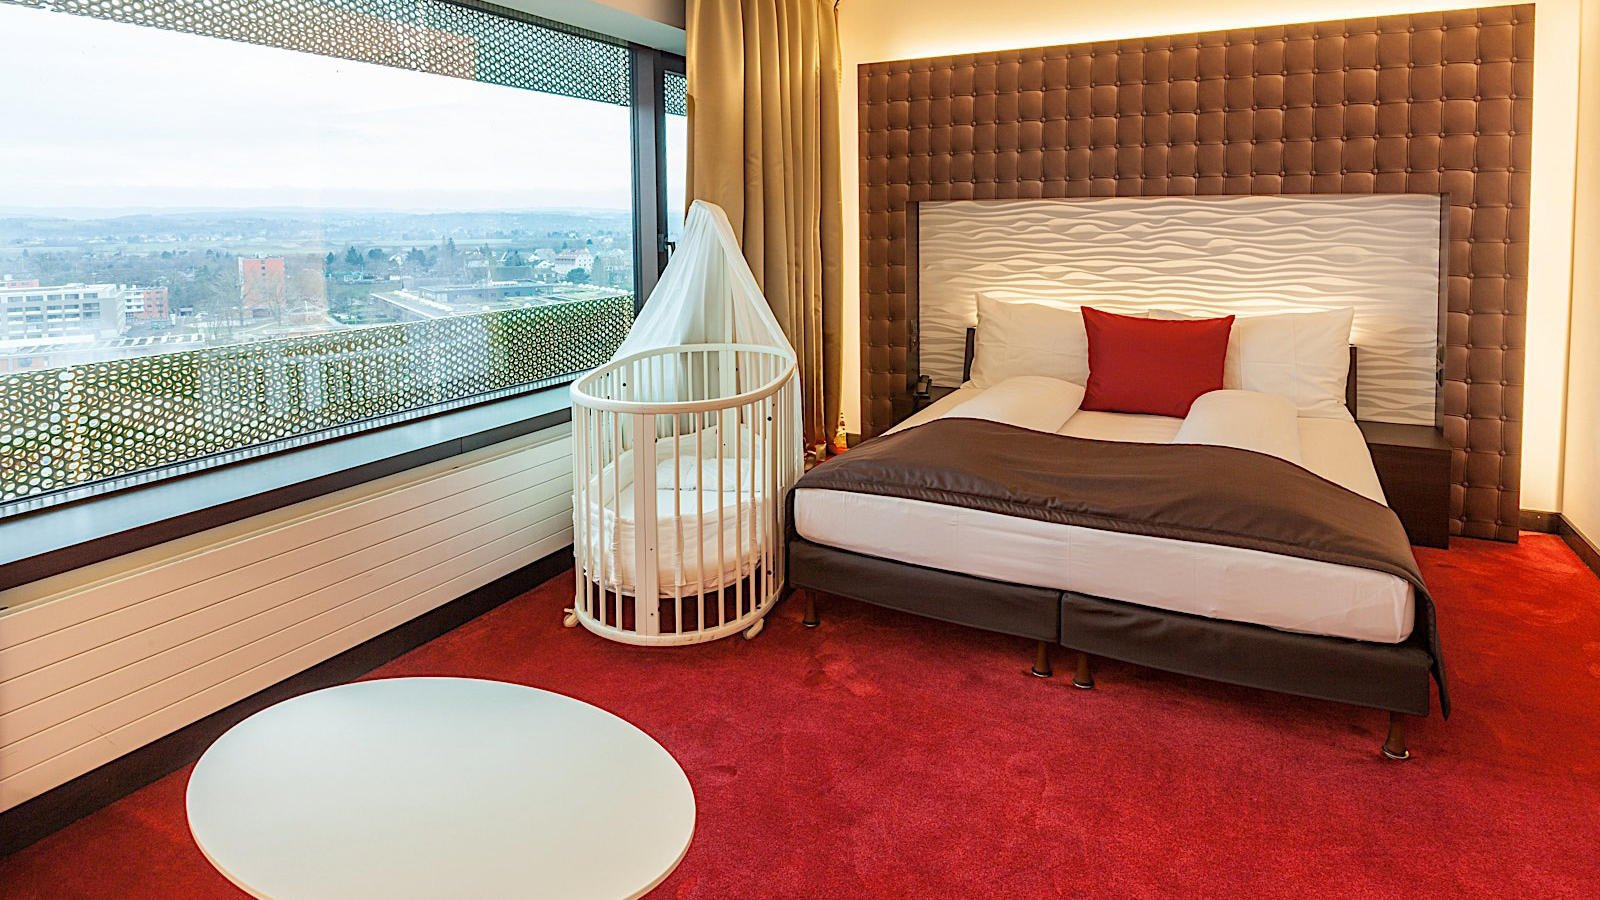 Family Room Sky View at Airport Hotel Basel